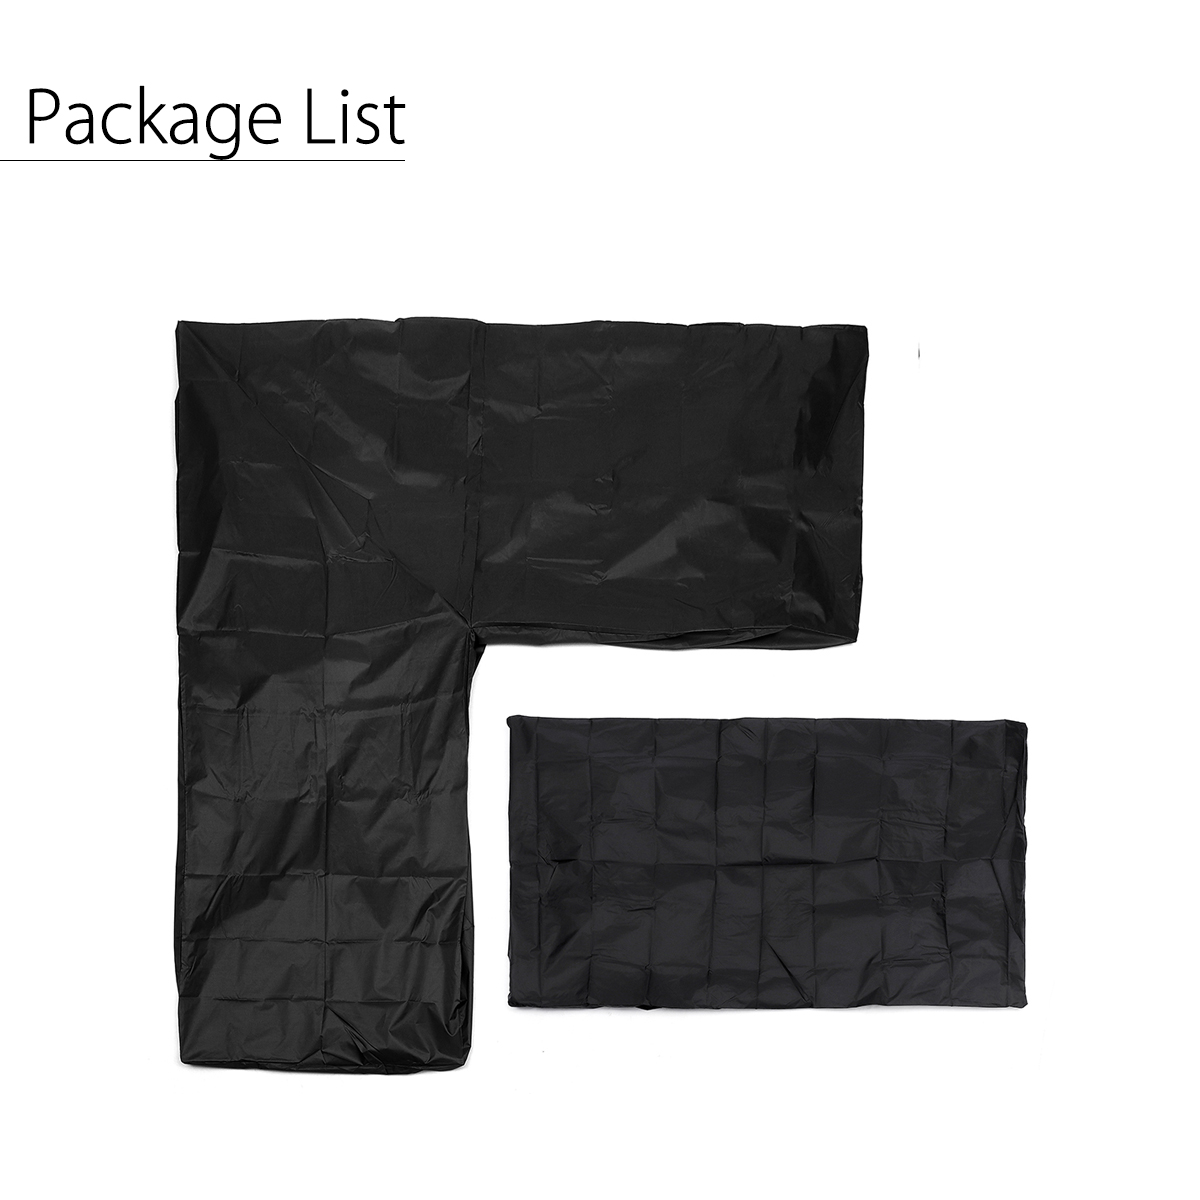 Dust Covers All-purpose Furniture Cover Set Waterproof Outdoor Sectional Black L Shape Corner Sofa Couch Cover+rectangular Protection Covers Household Merchandises